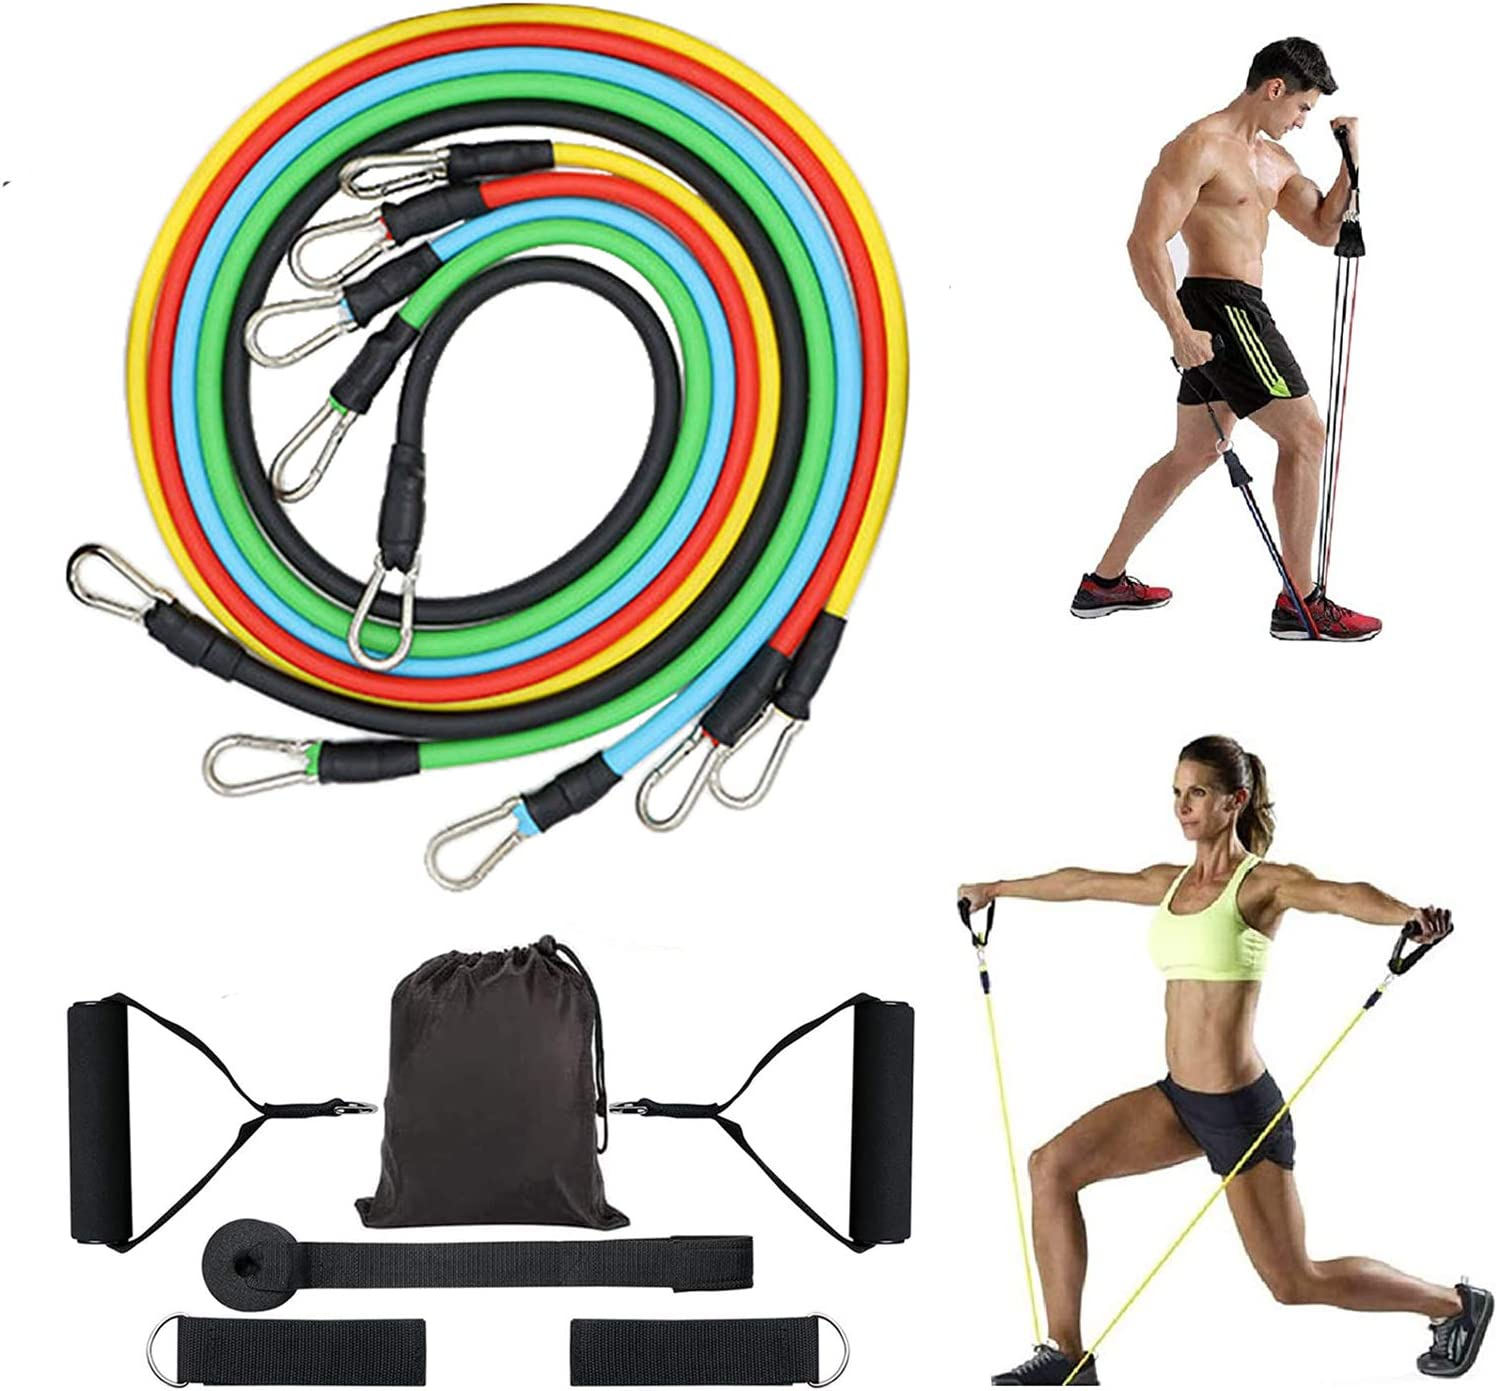 Home Workouts,Physical Therapy,Gym Training,Yoga Resistance Bands Set,Including 5 Stackable Exercise Bands with Door Anchor,2 Foam Handle,2 Metal Foot Ring /& Carrying Case